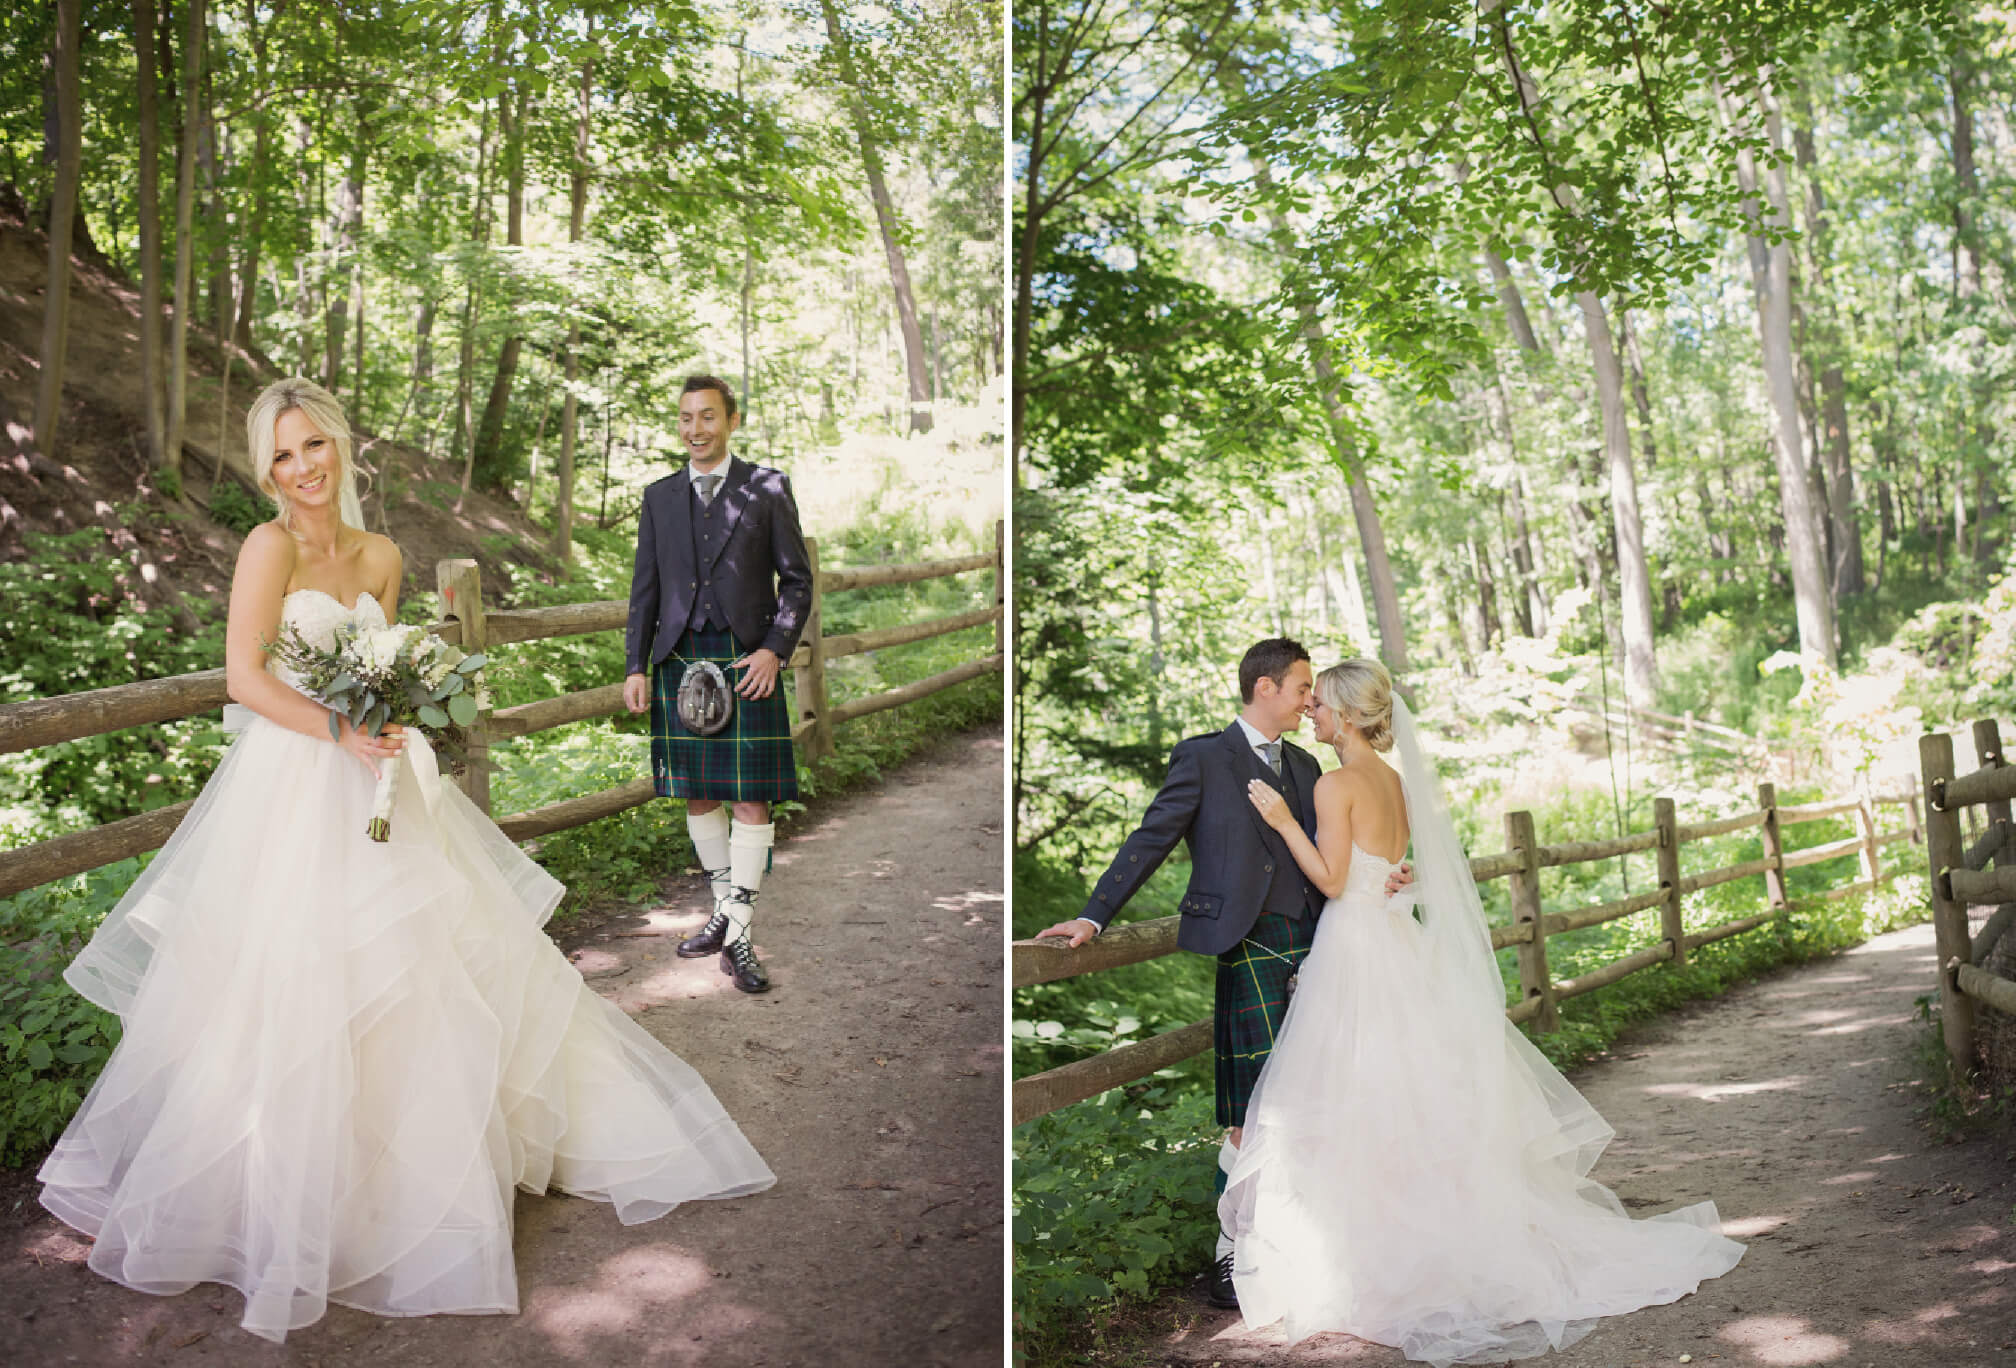 bride and groom first look in forest